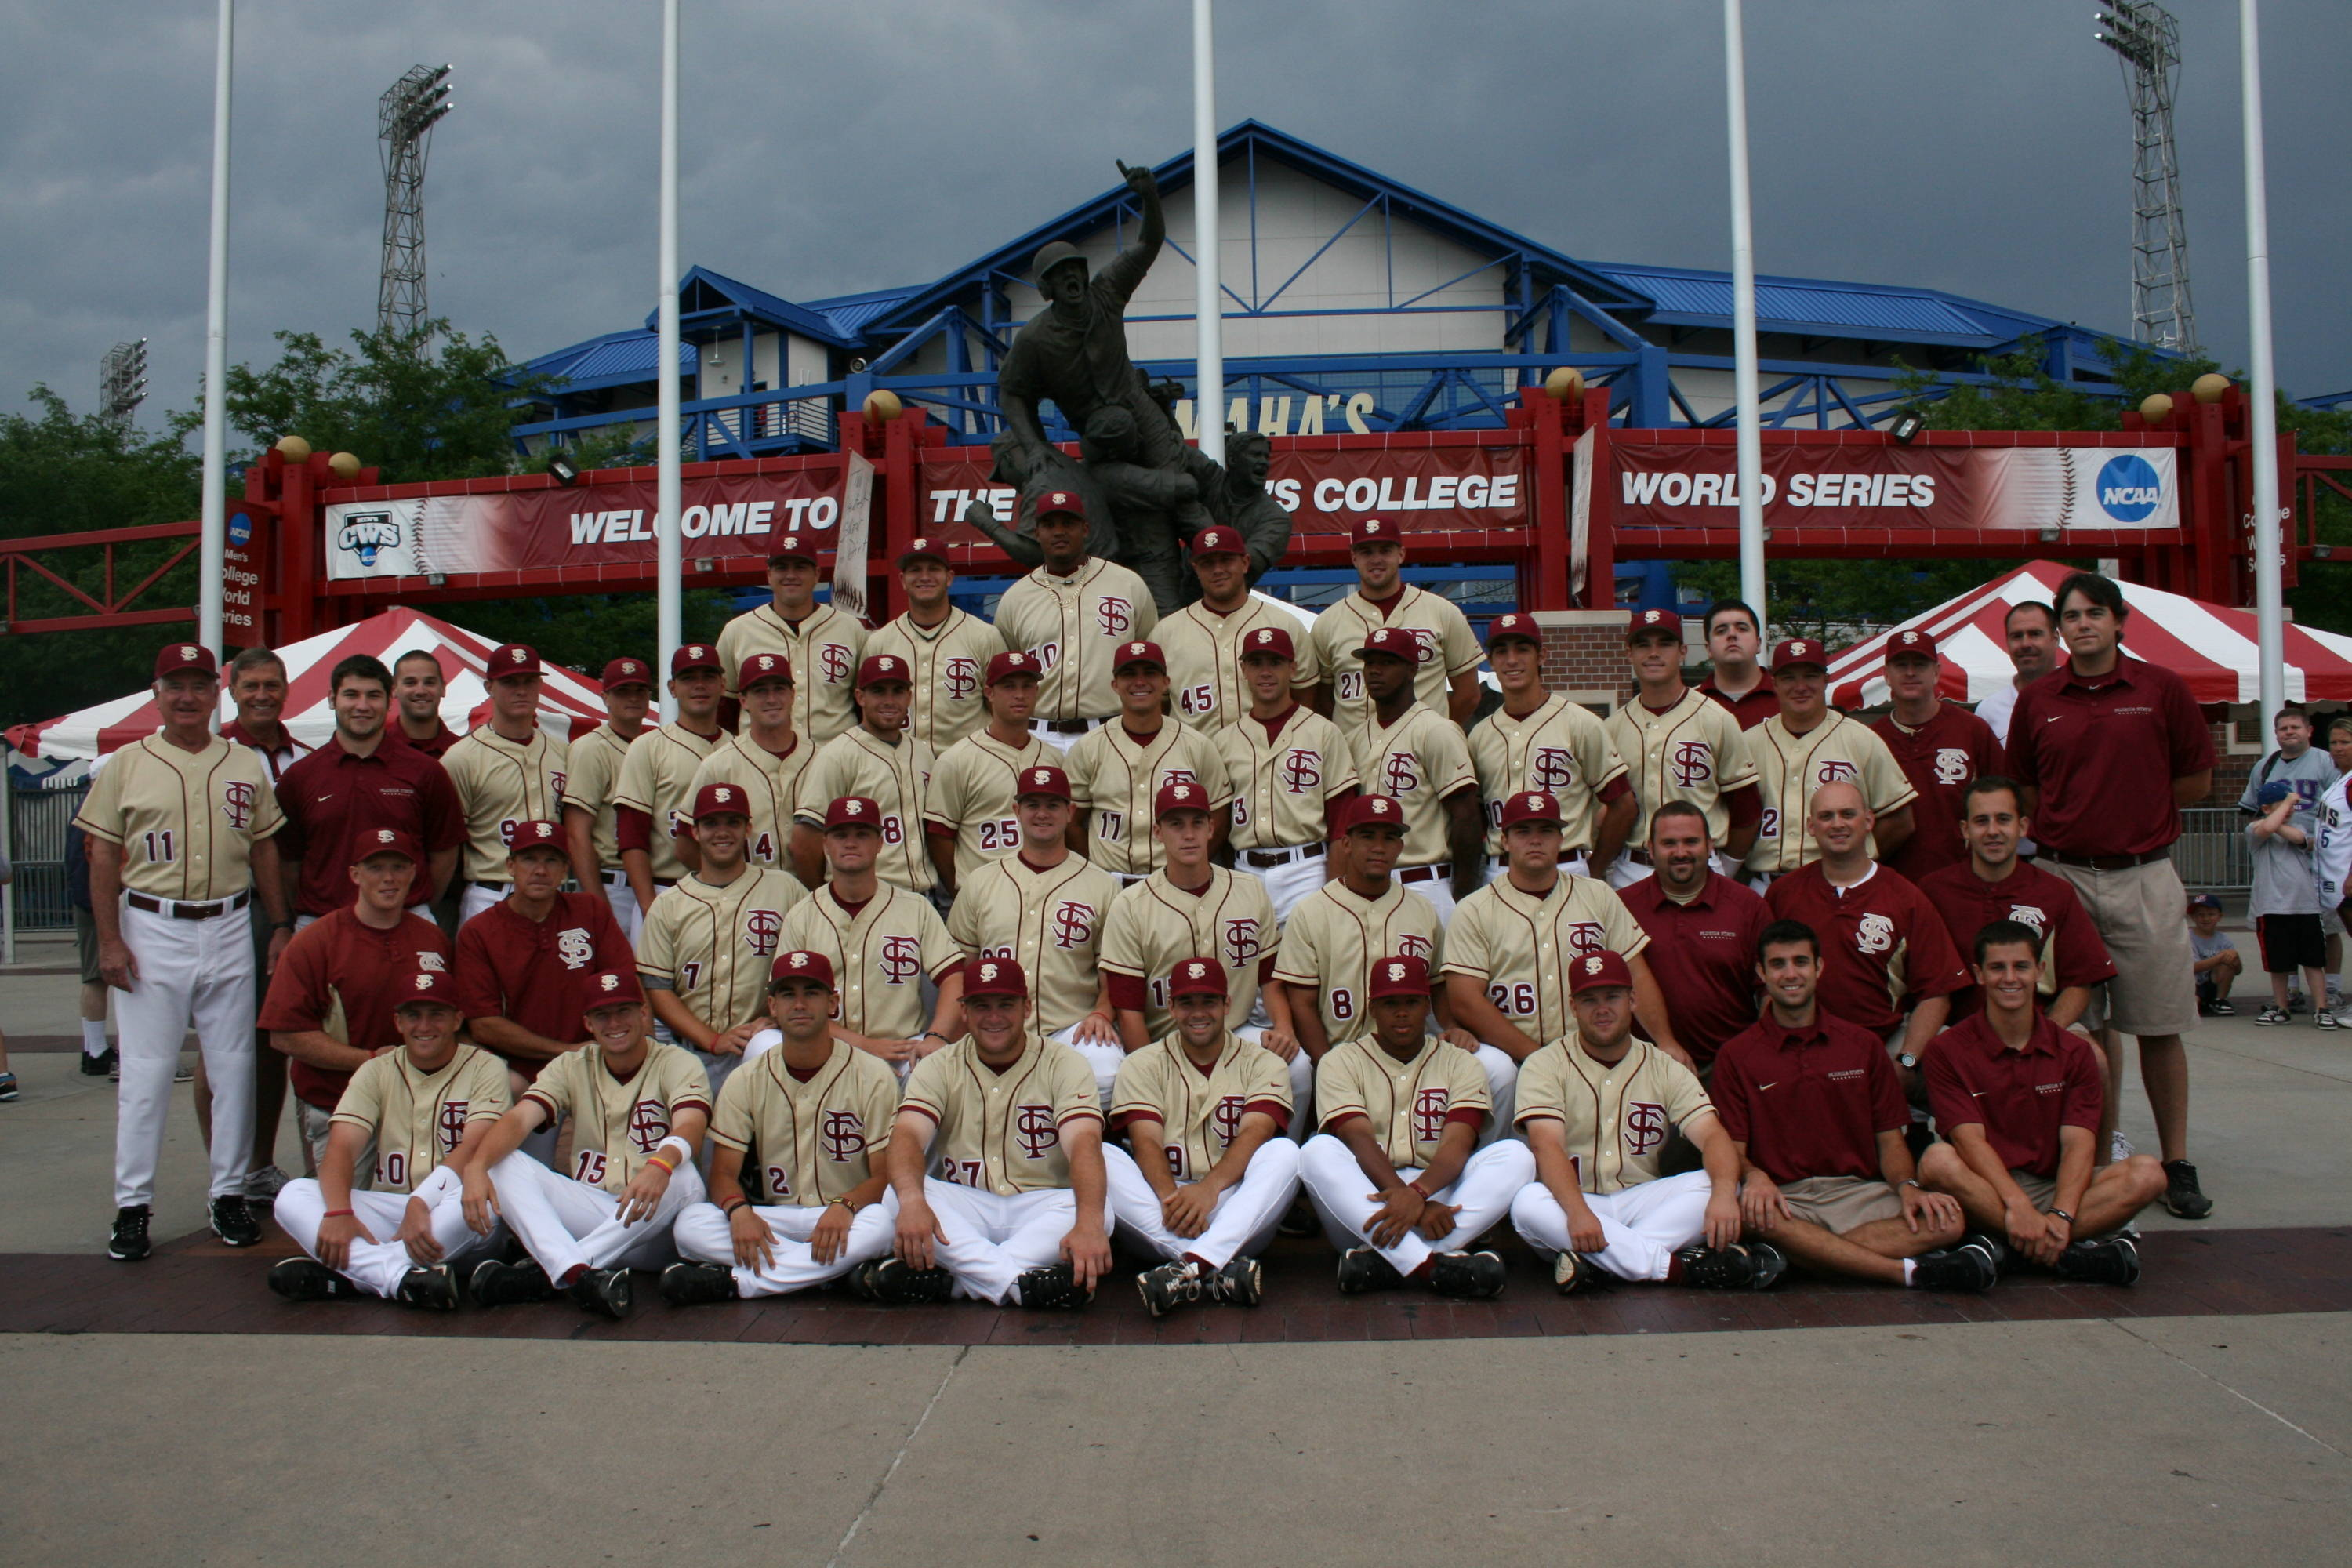 The 2010 Seminole pose in front of the famous statue outside Rosenblatt Stadium.